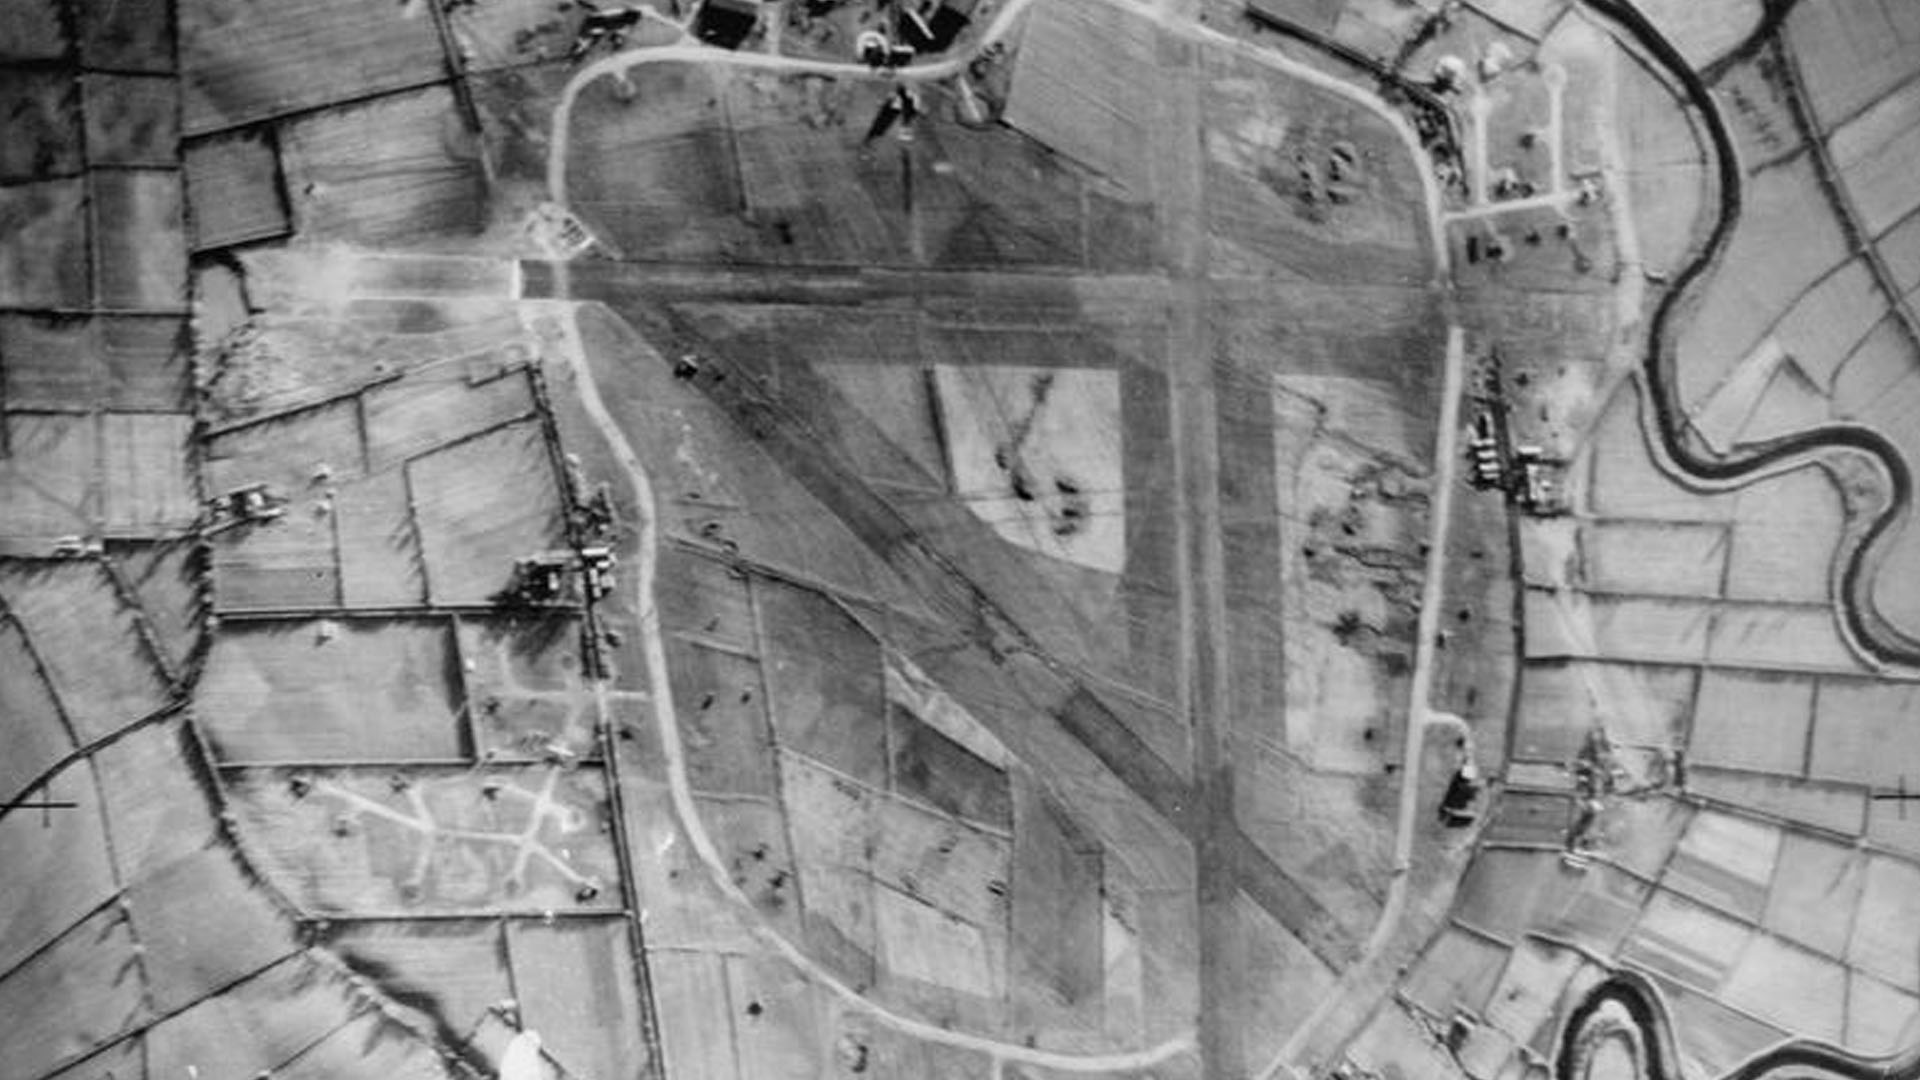 RAF Limavady, Aghanloo, Co. Londonderry